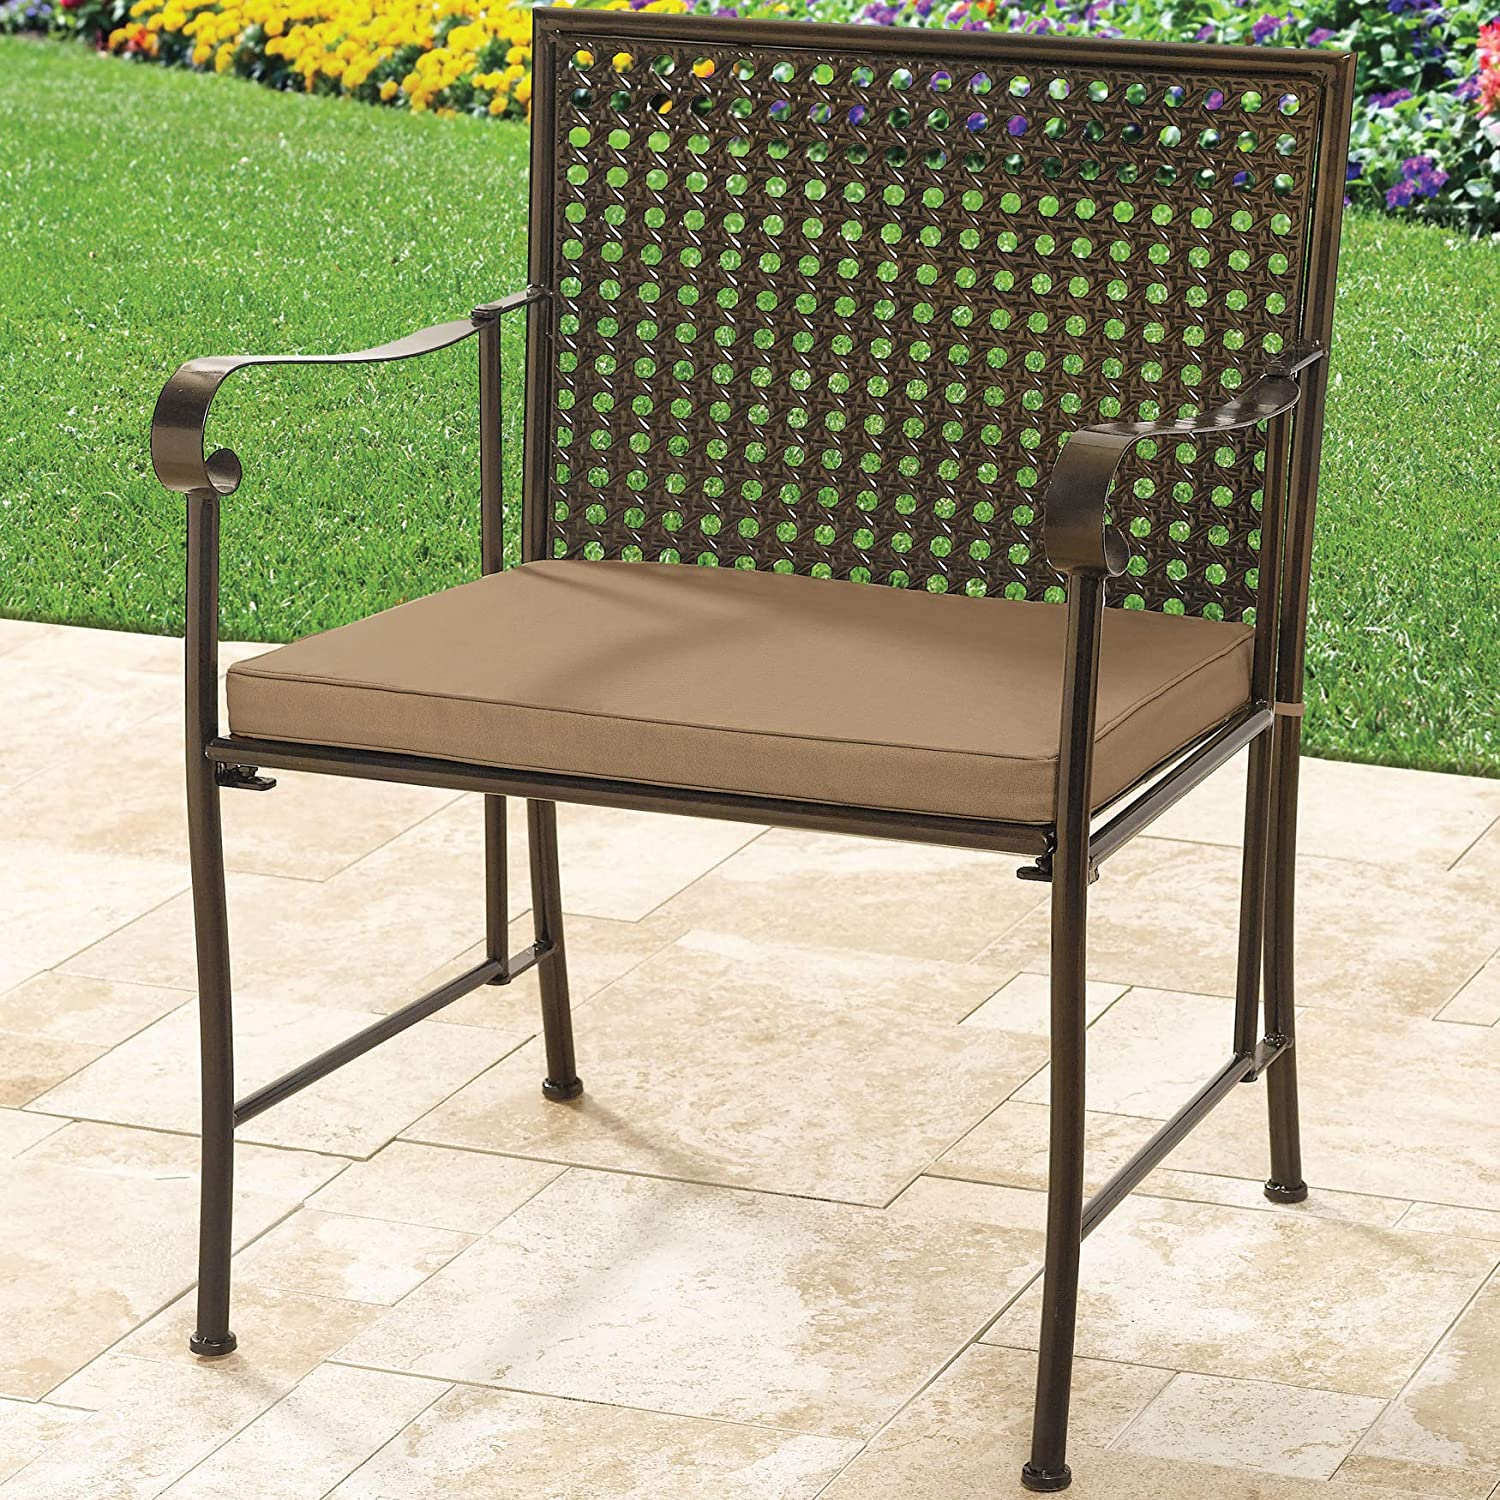 BrylaneHome Extra Wide Metal Folding Chair – Taupe